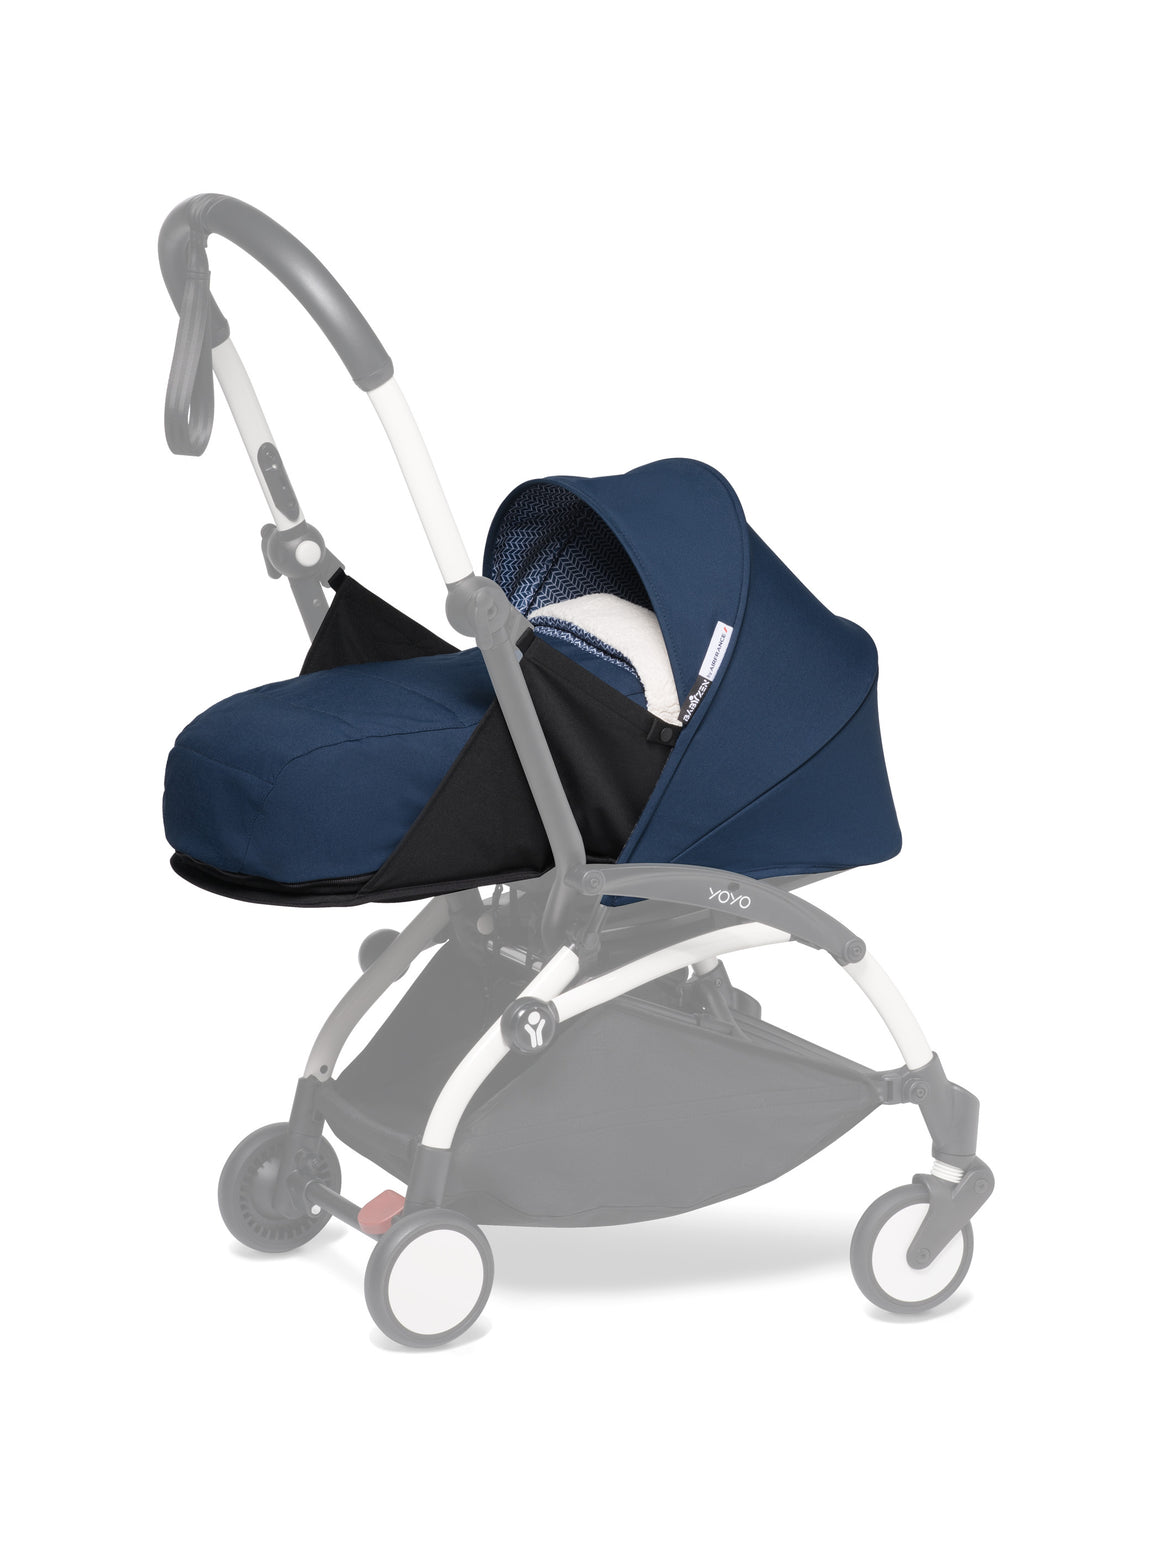 YOYO Newborn Nest Only - Navy Blue